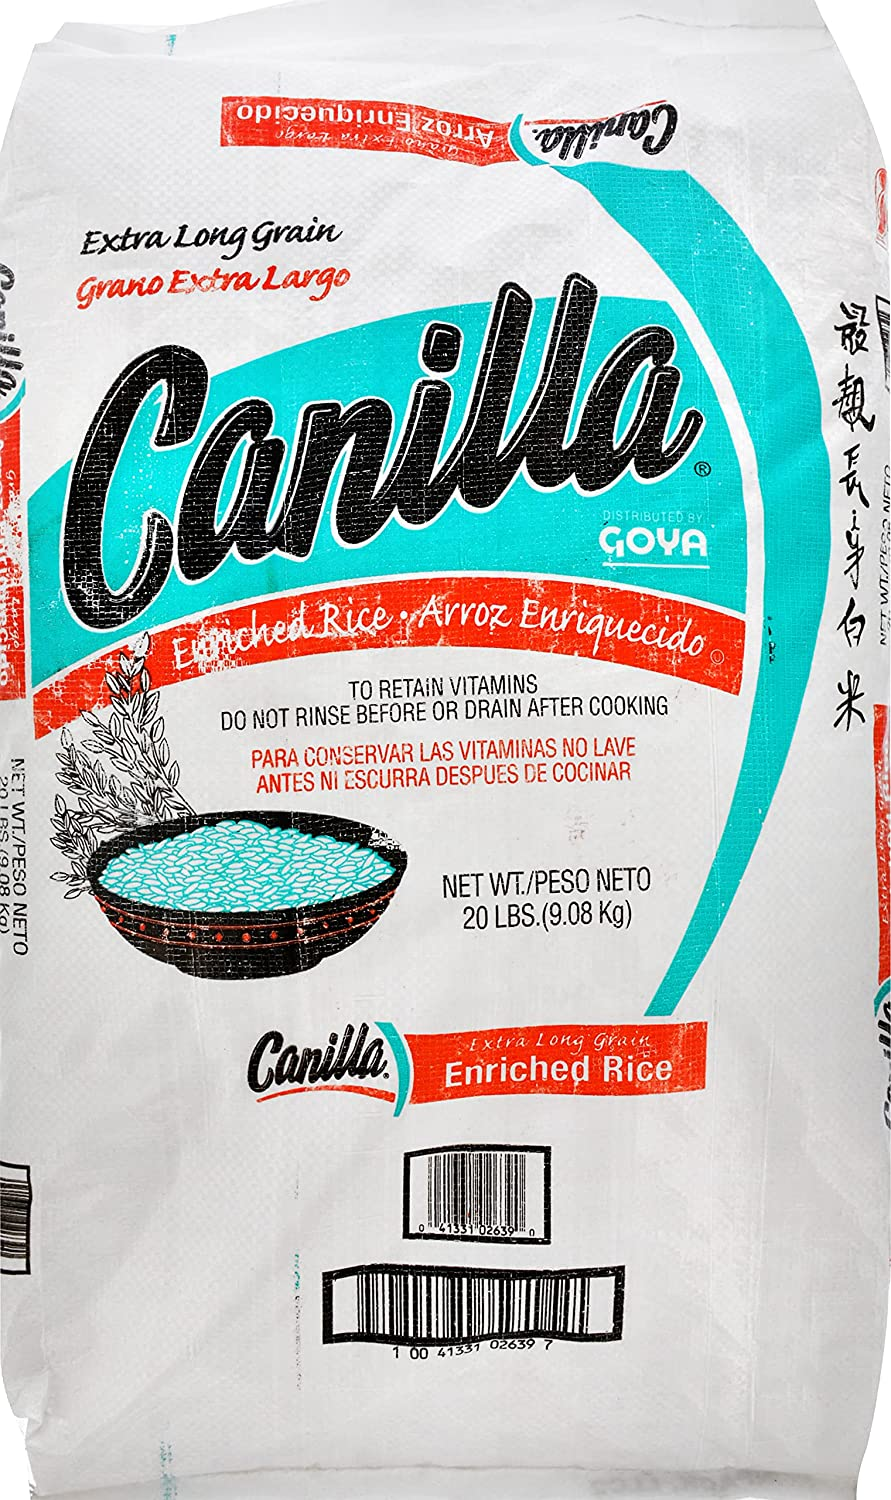 Goya Foods Canilla Extra Long Grain Outstanding Rice Pack Pound White 20 New product! New type o